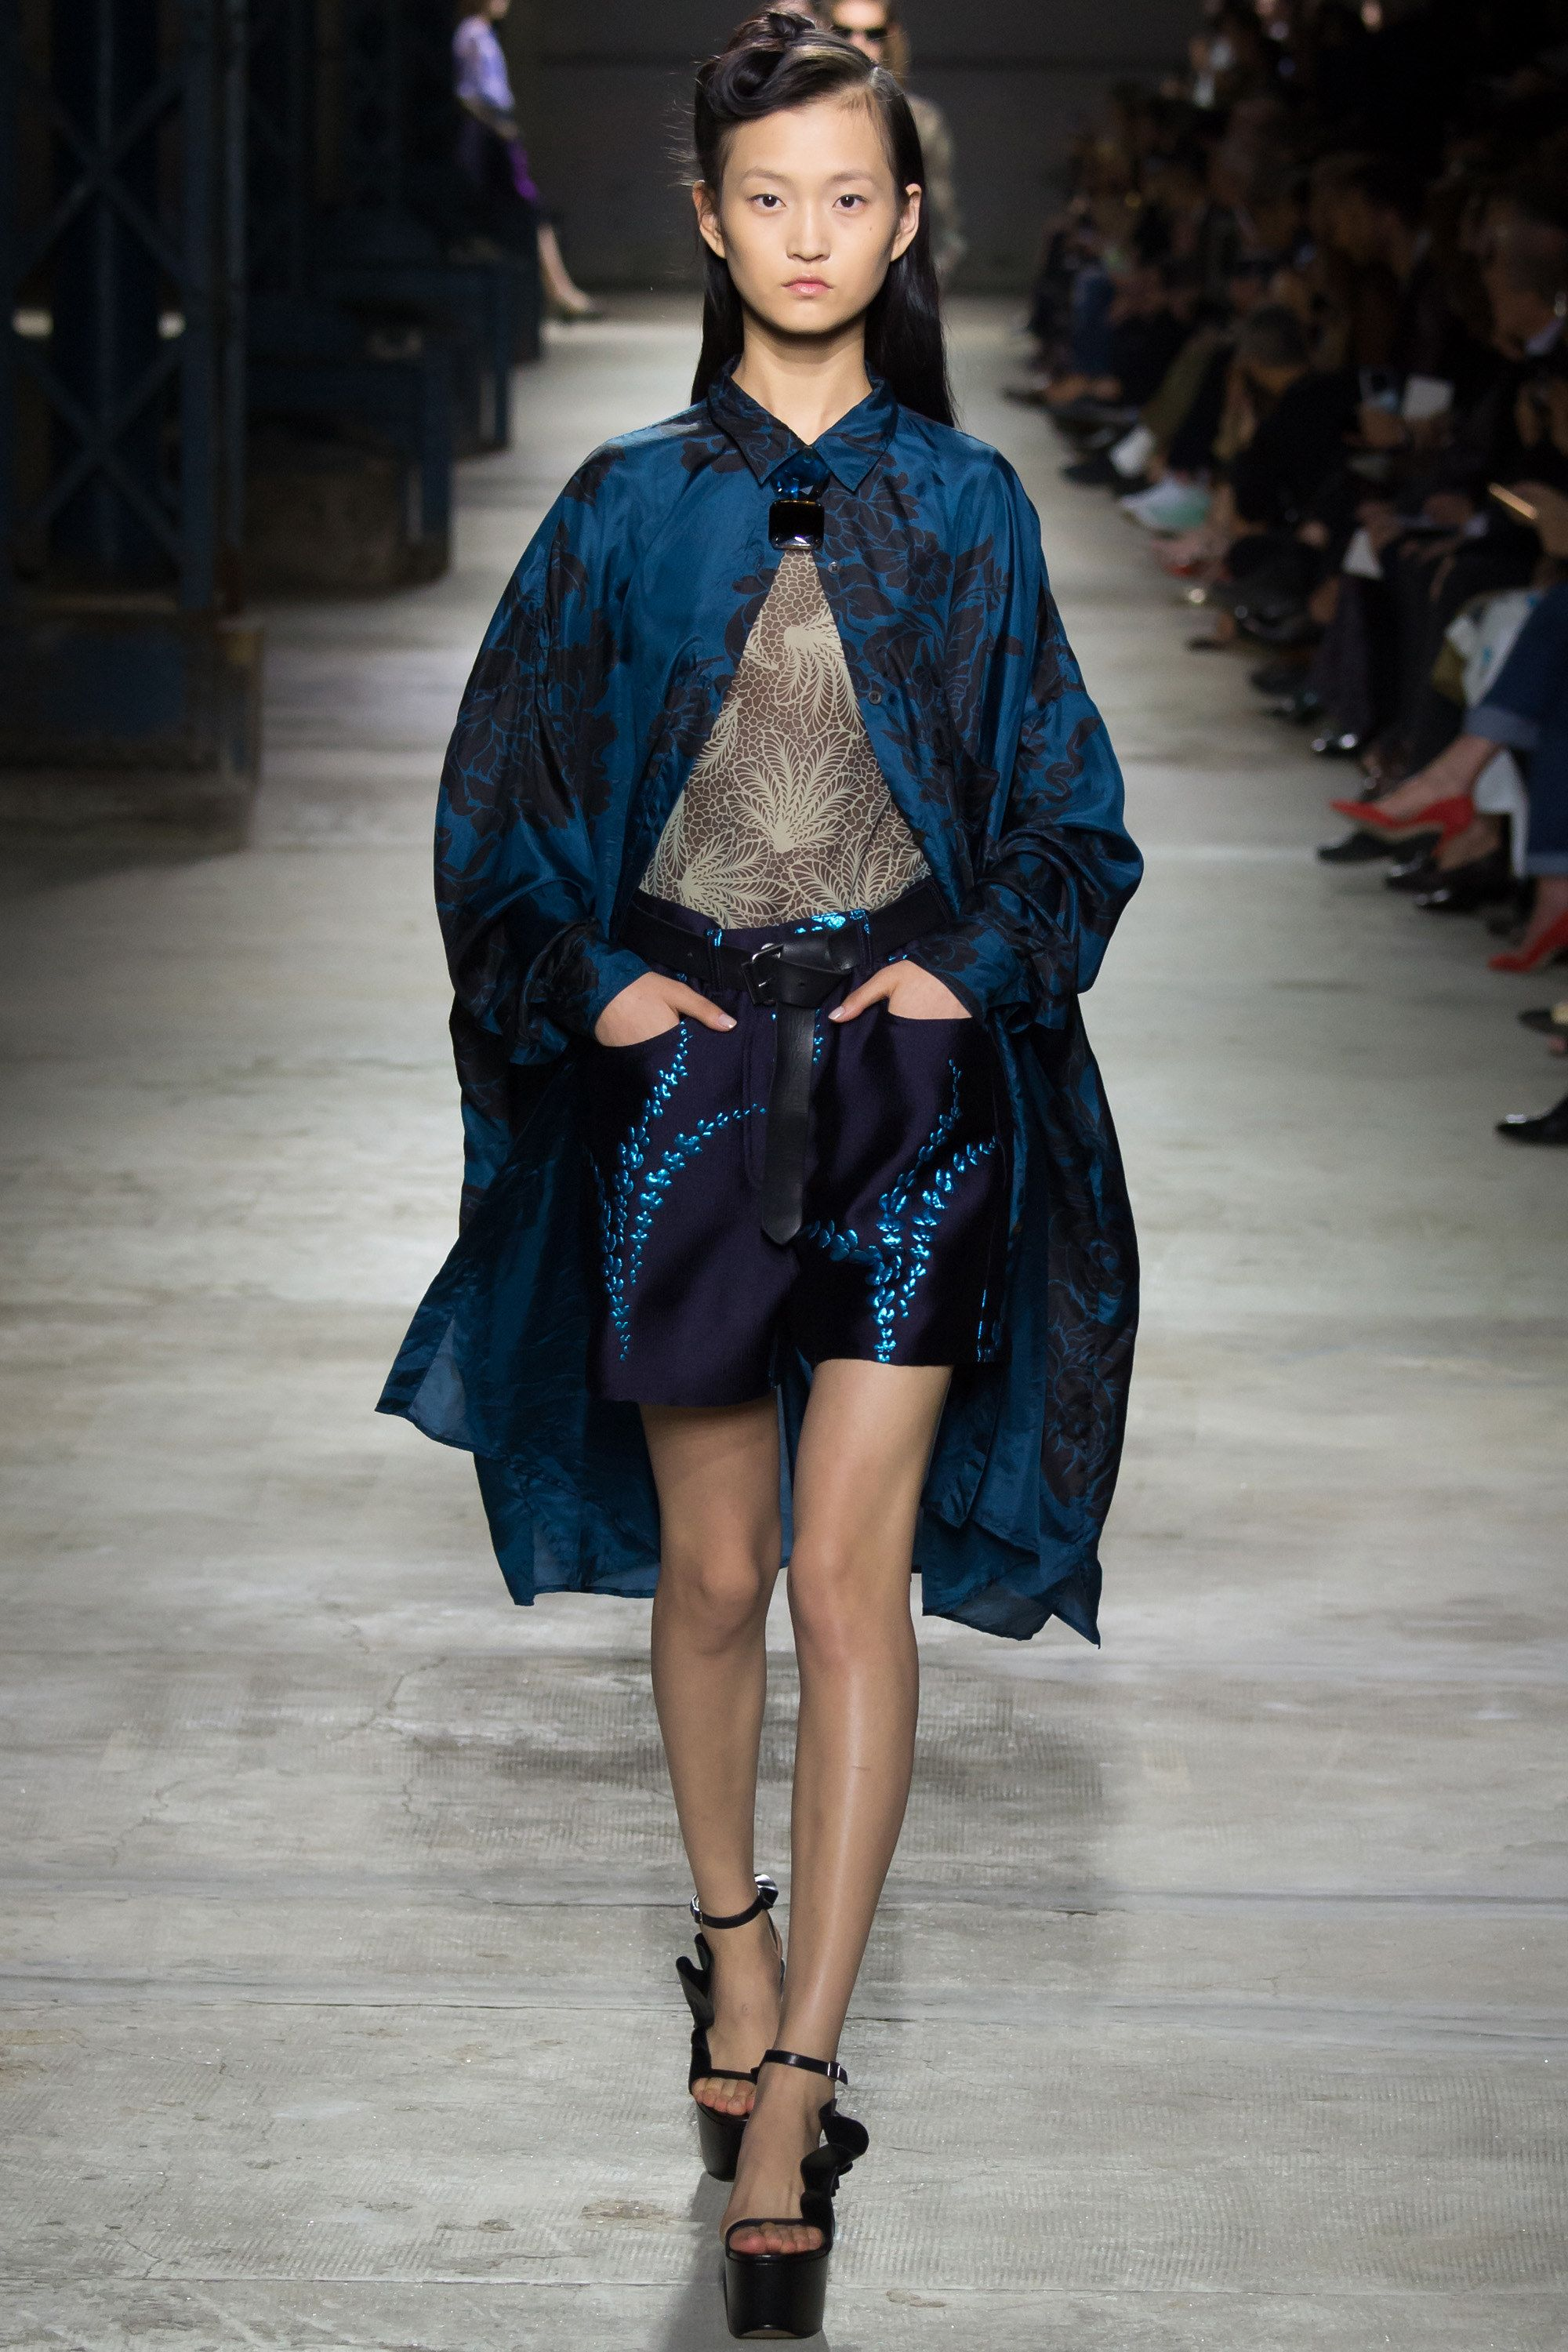 http://www.vogue.com/fashion-shows/spring-2016-ready-to-wear/dries-van-noten/slideshow/collection